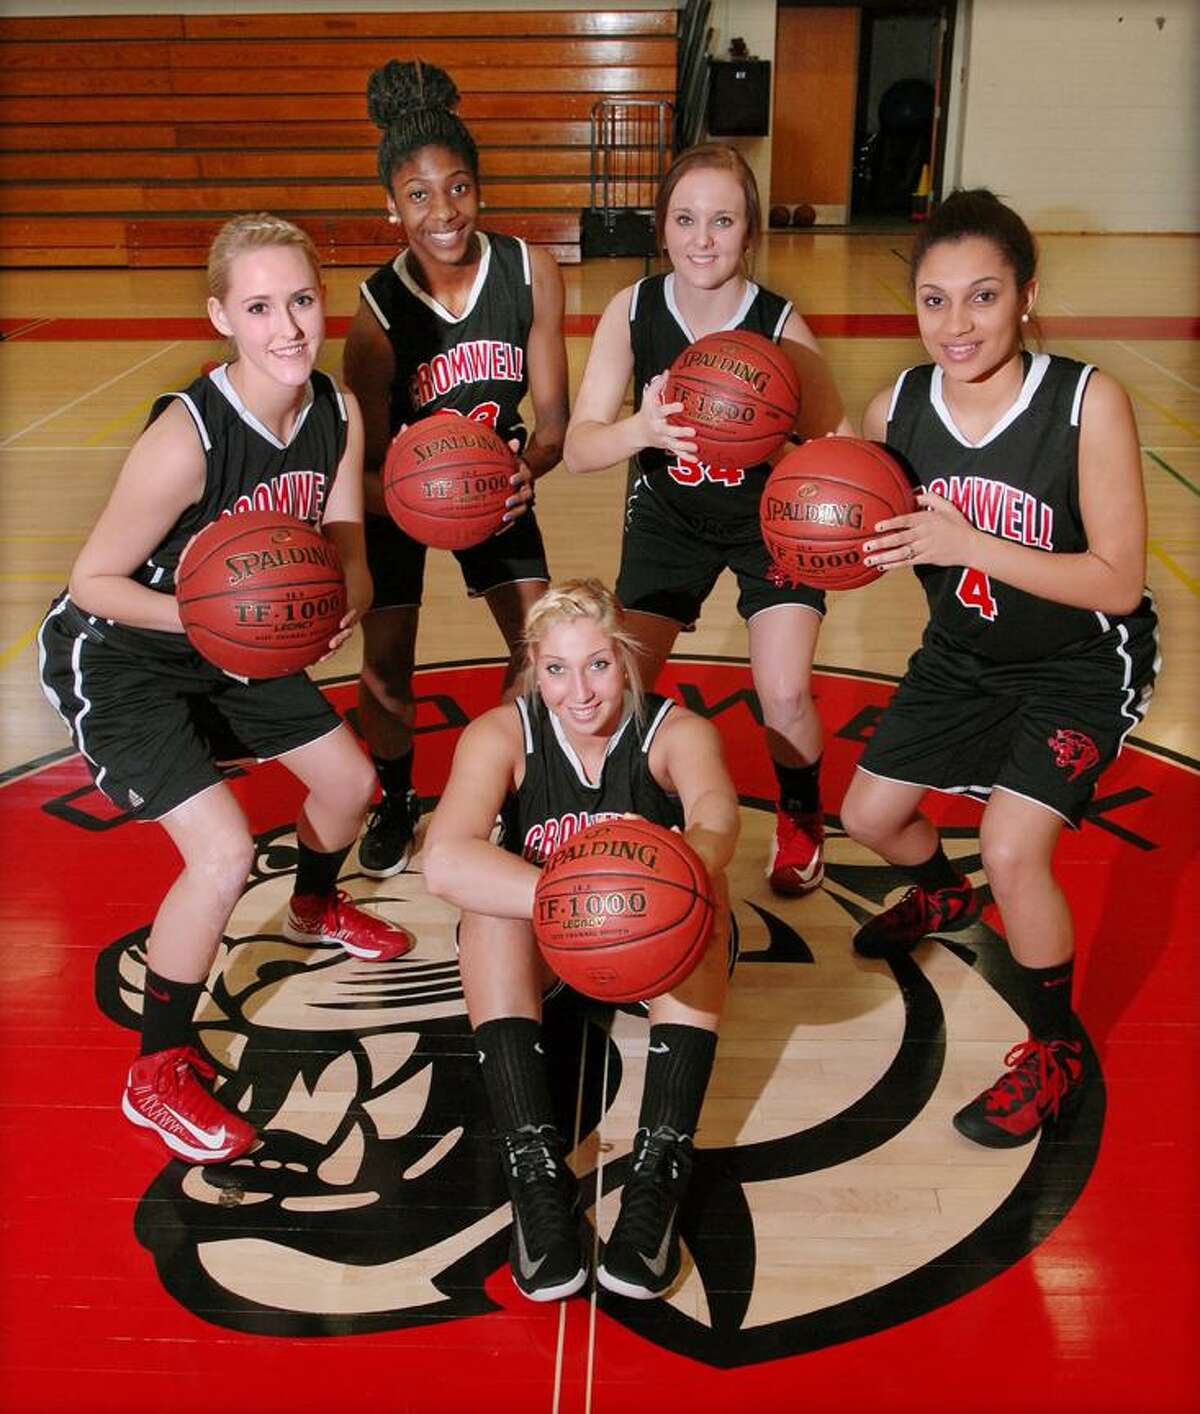 Catherine Avalone/The Middletown Press The starting five for unbeaten Cromwell girls basketball: (front row) Lindsay Langenauer and (back row, left to right) Emily Appleby, Janelle Harrison, Kelly Flanigan and Alexa Riley. Cromwell (13-0) plays at Old Saybrook Friday at 7.